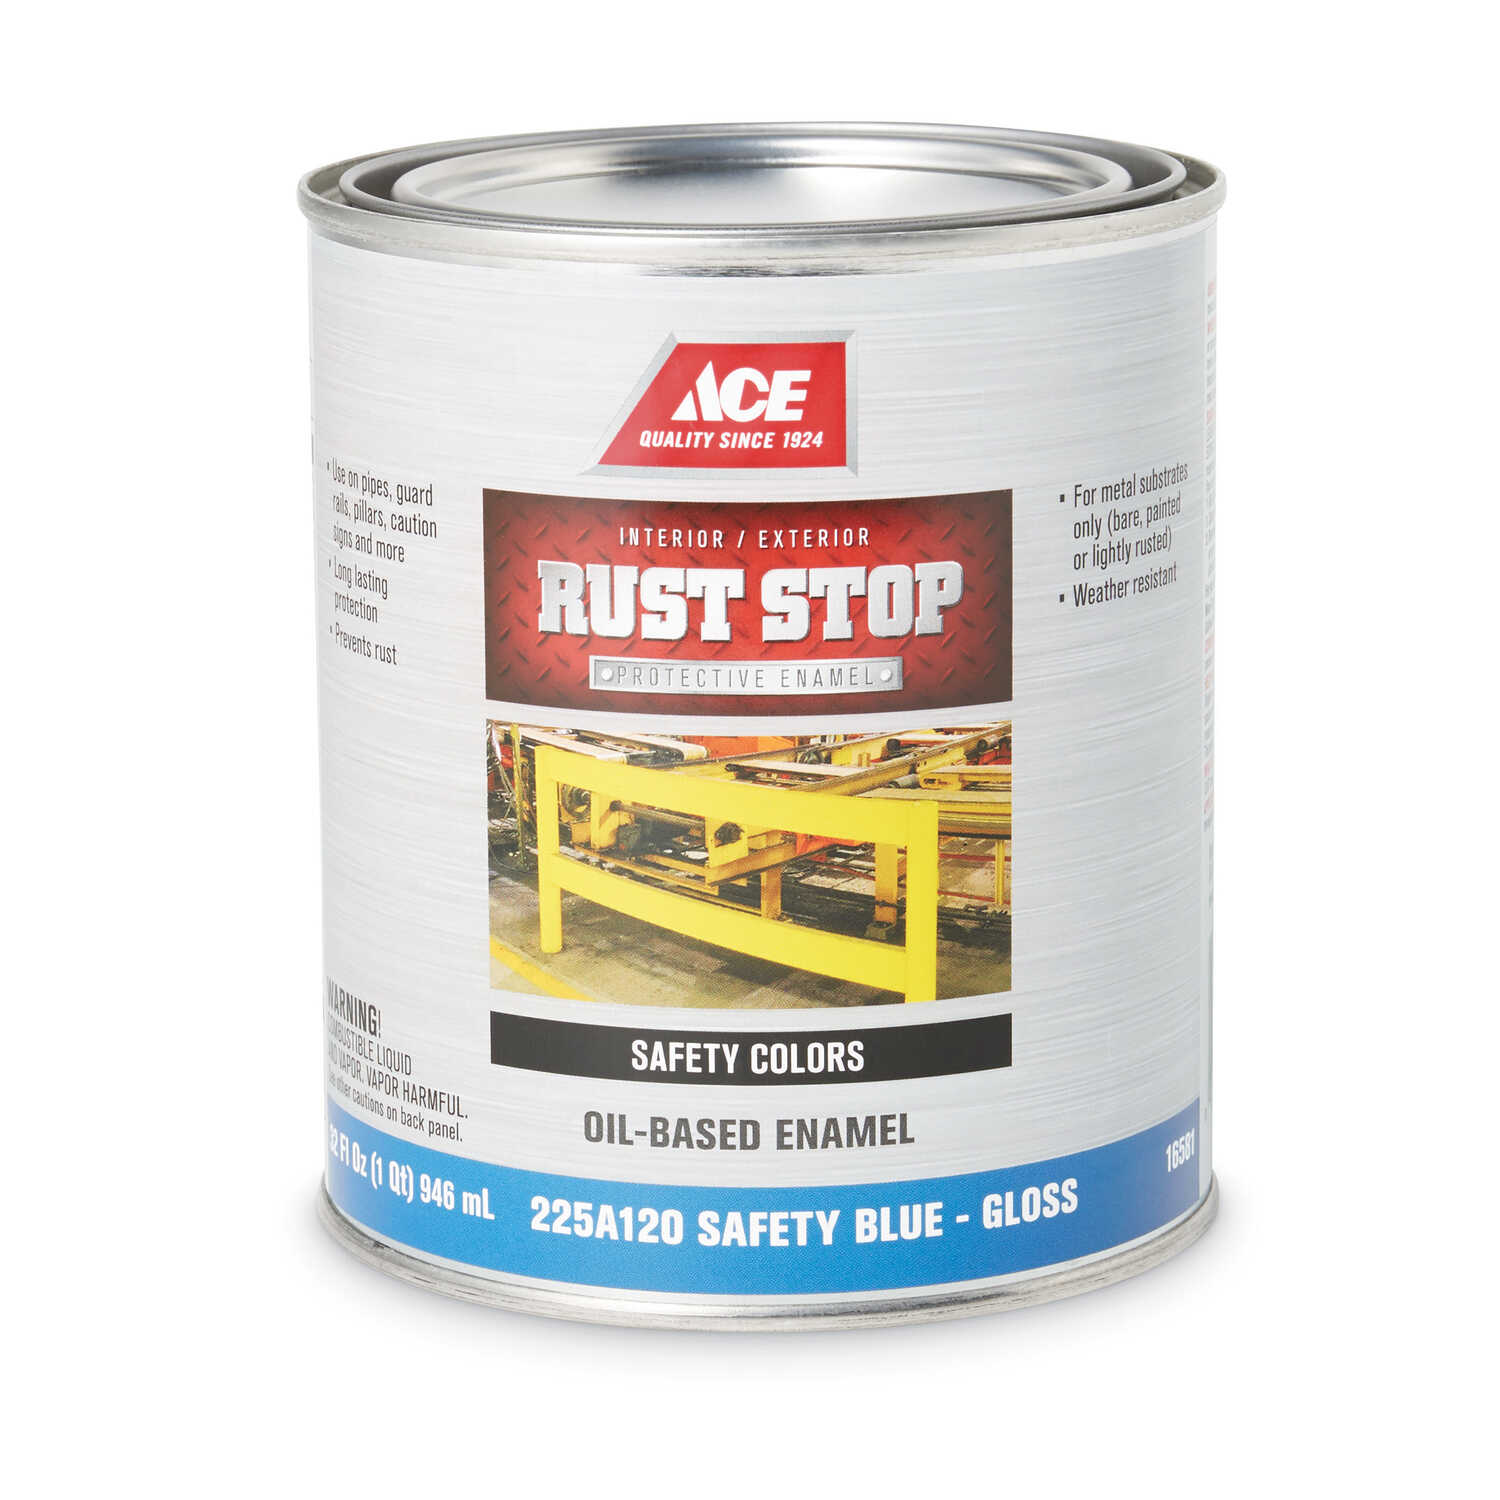 Ace  Rust Stop  Indoor and Outdoor  Gloss  Safety Blue  Rust Prevention Paint  1 qt.